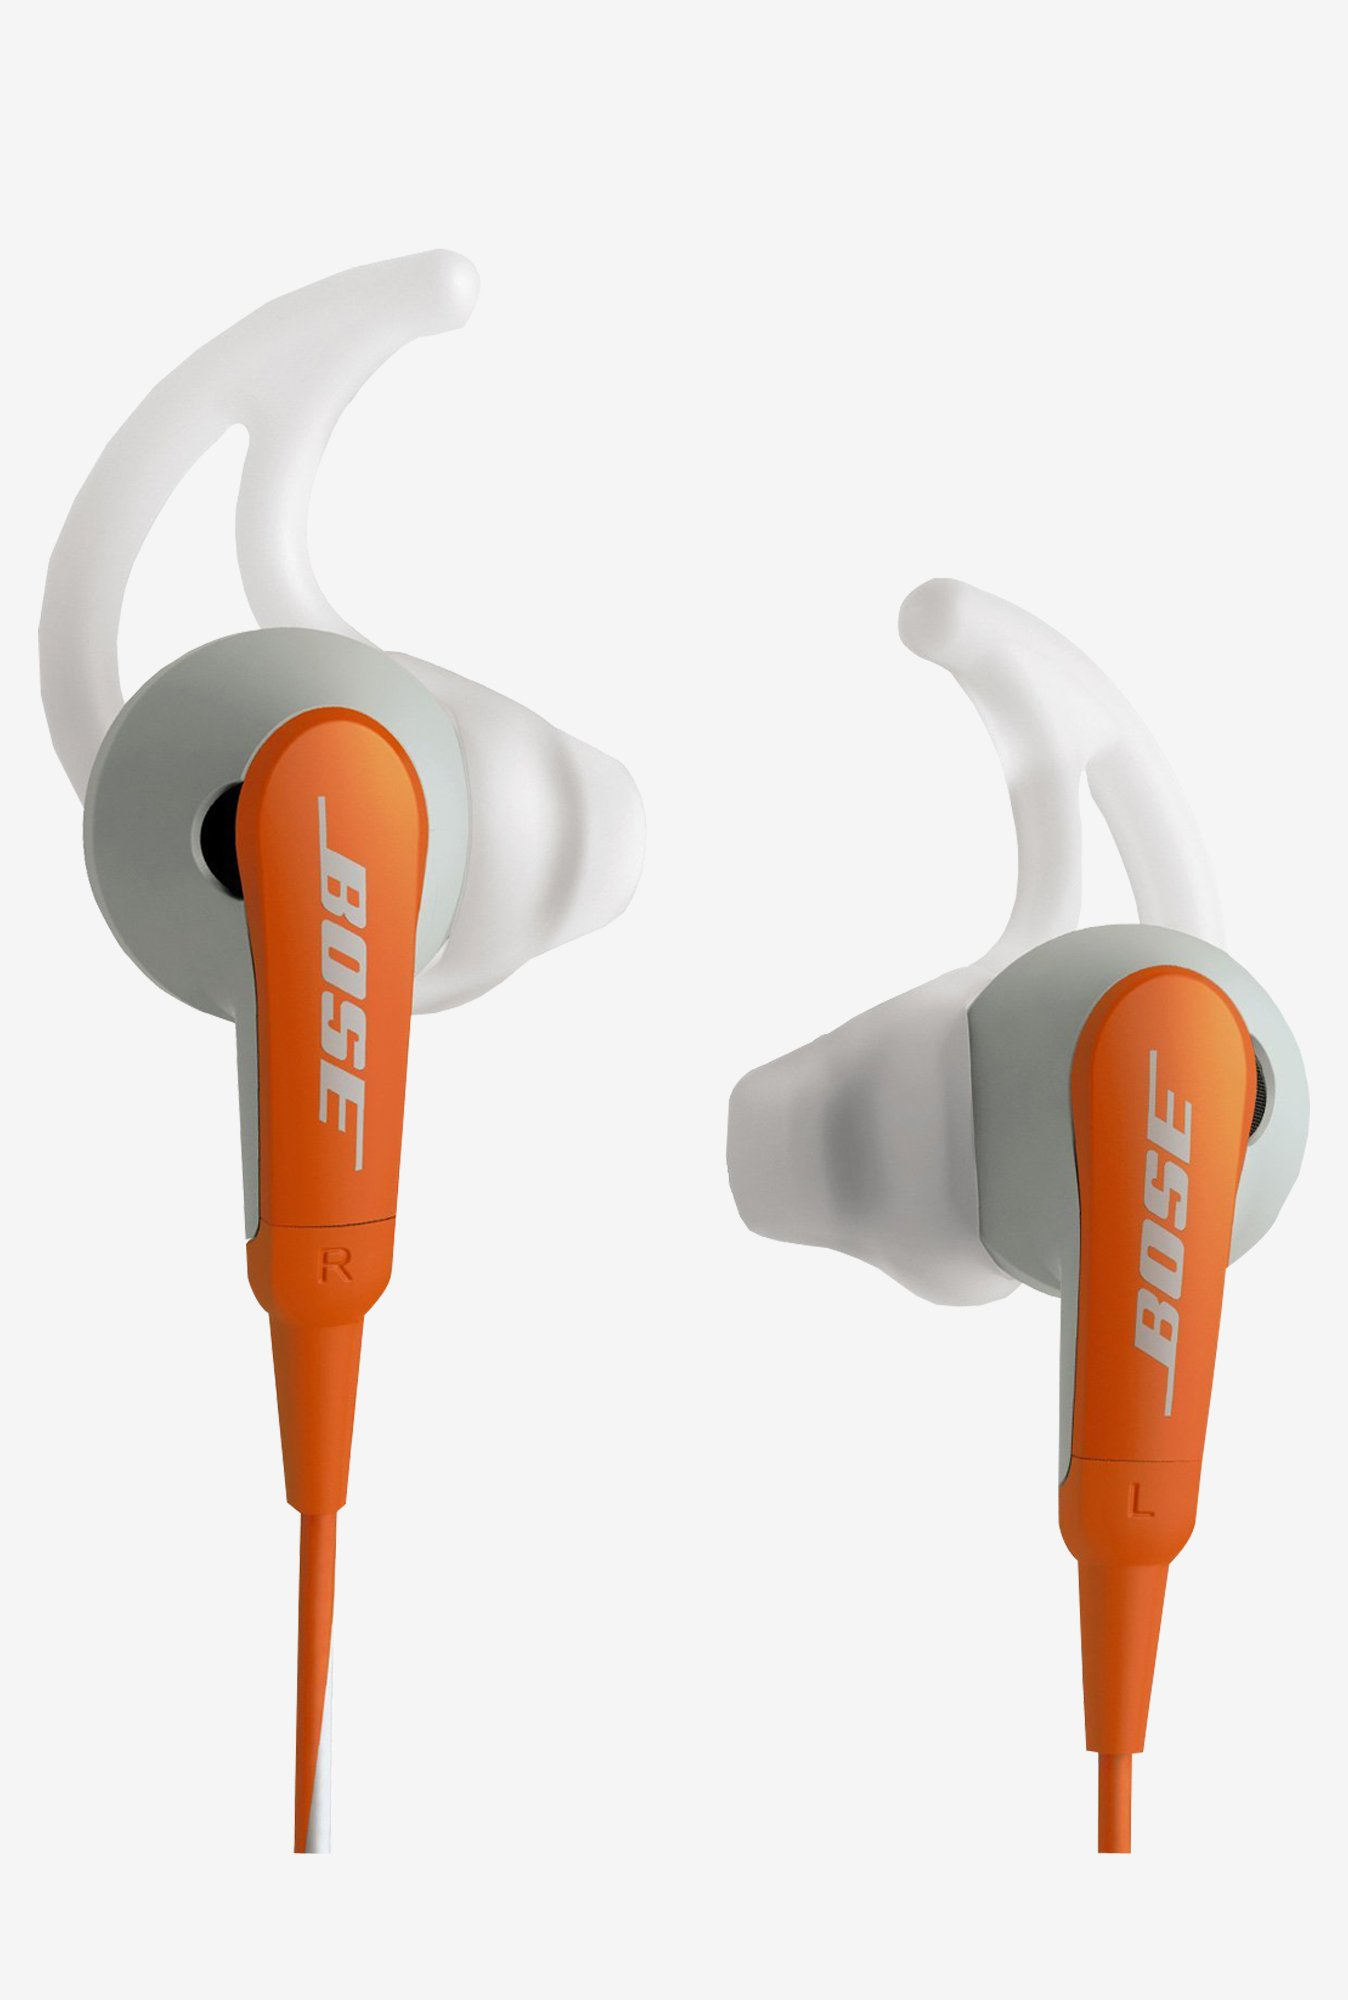 Bose SoundSport 717534-0020 In the Ear Headphones (Orange)